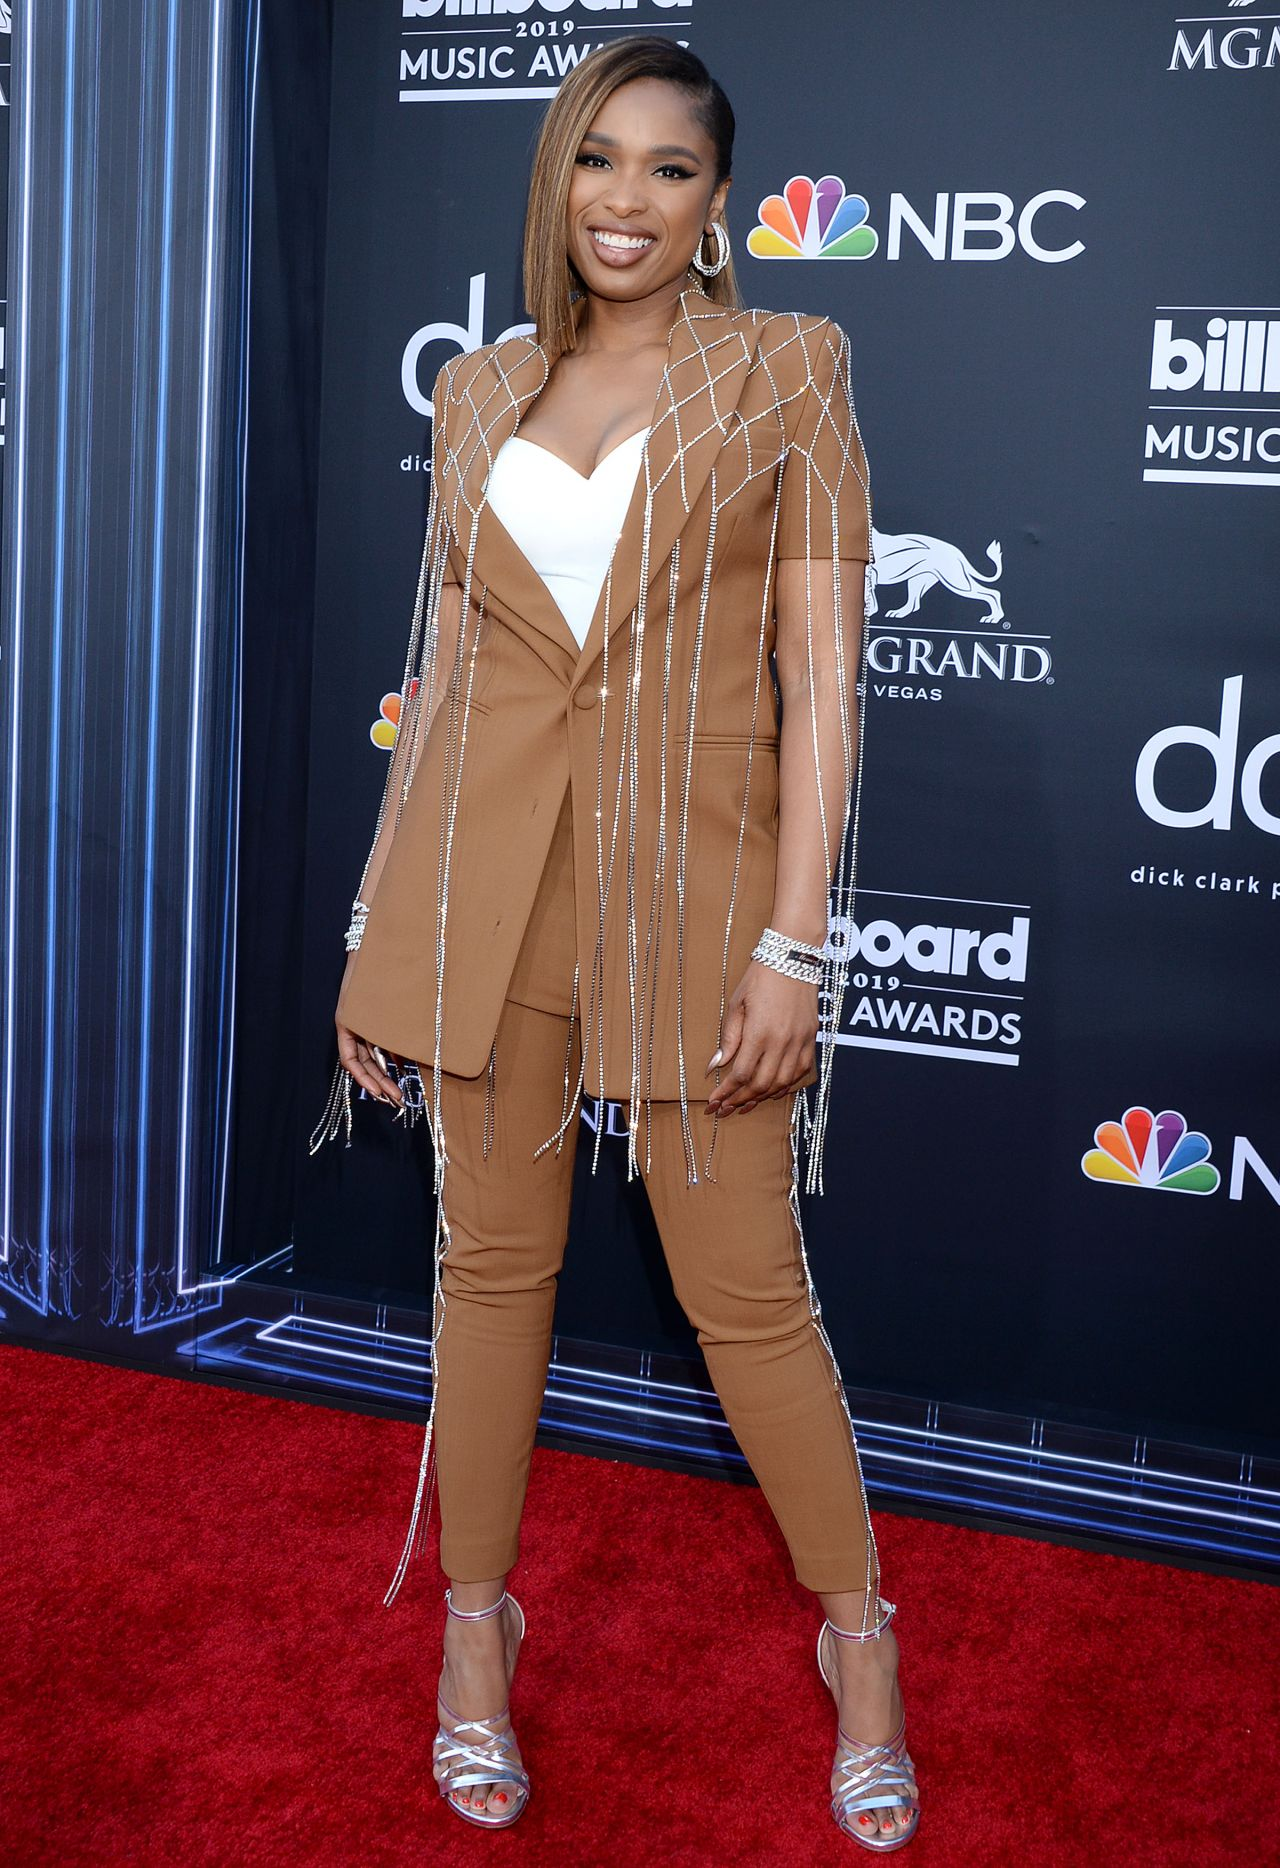 Jennifer Hudson 2019 Billboard Music Awards